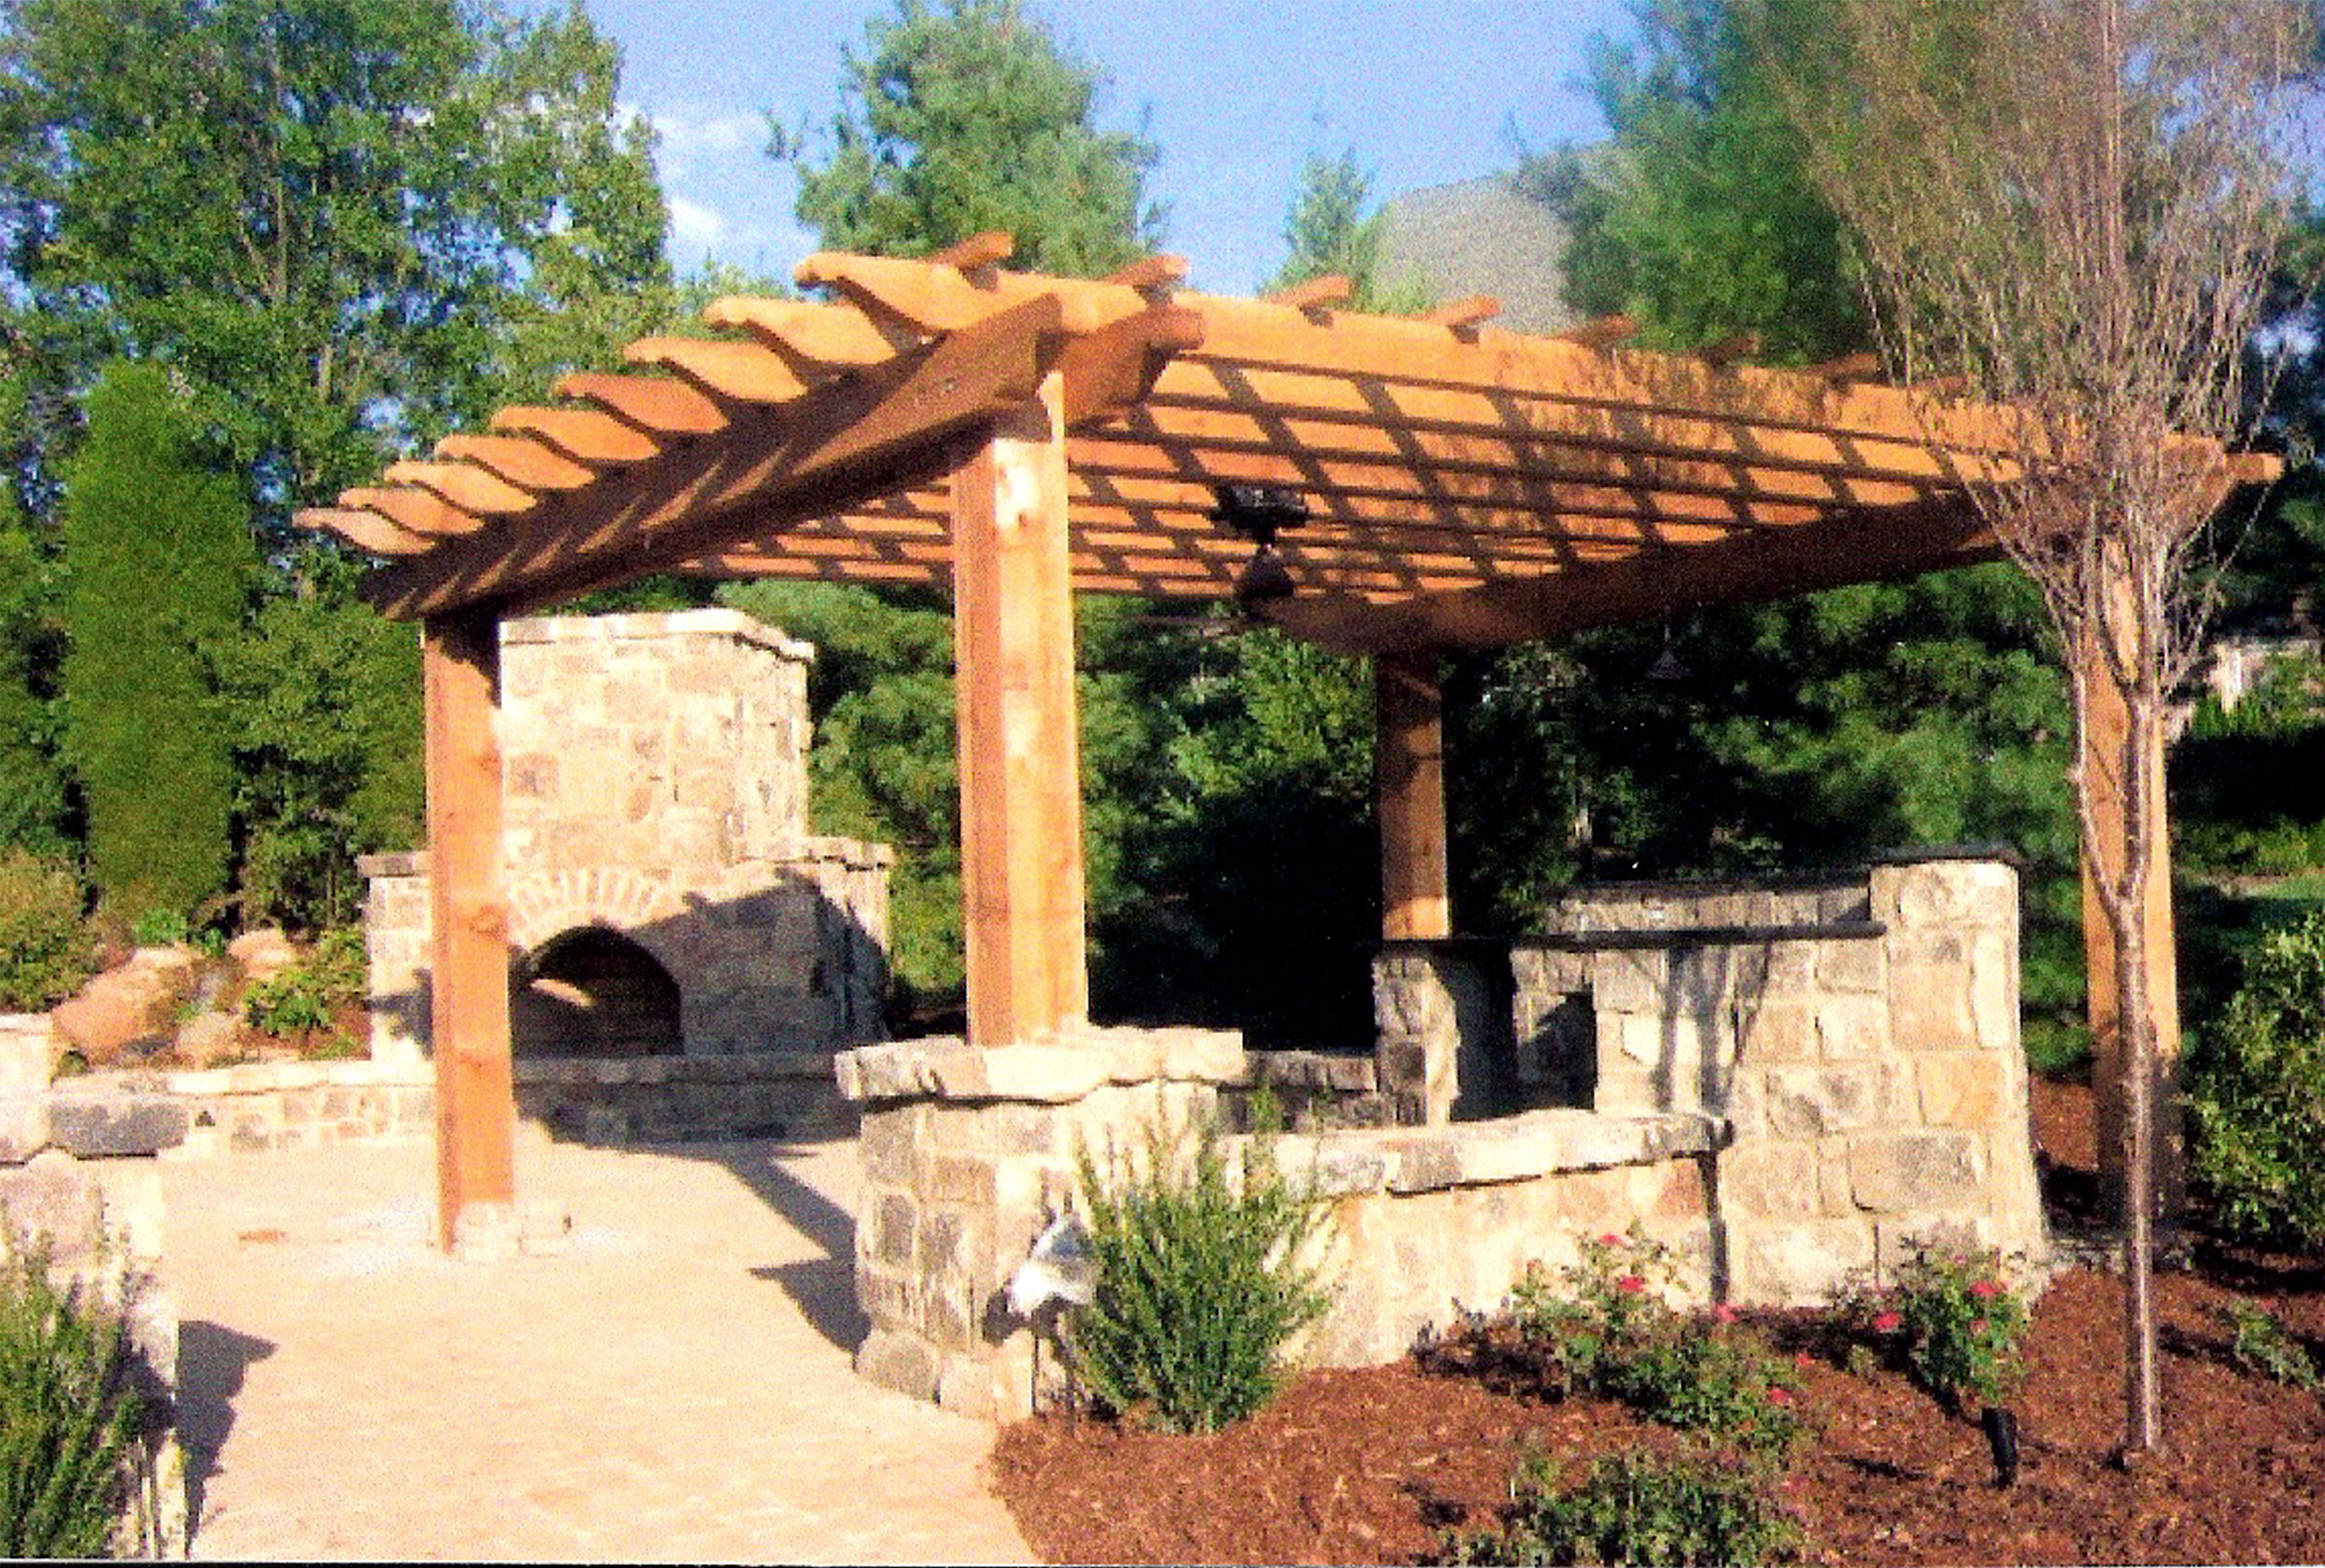 Regular Pergola plans ideas with stone veneer fireplace on the yard